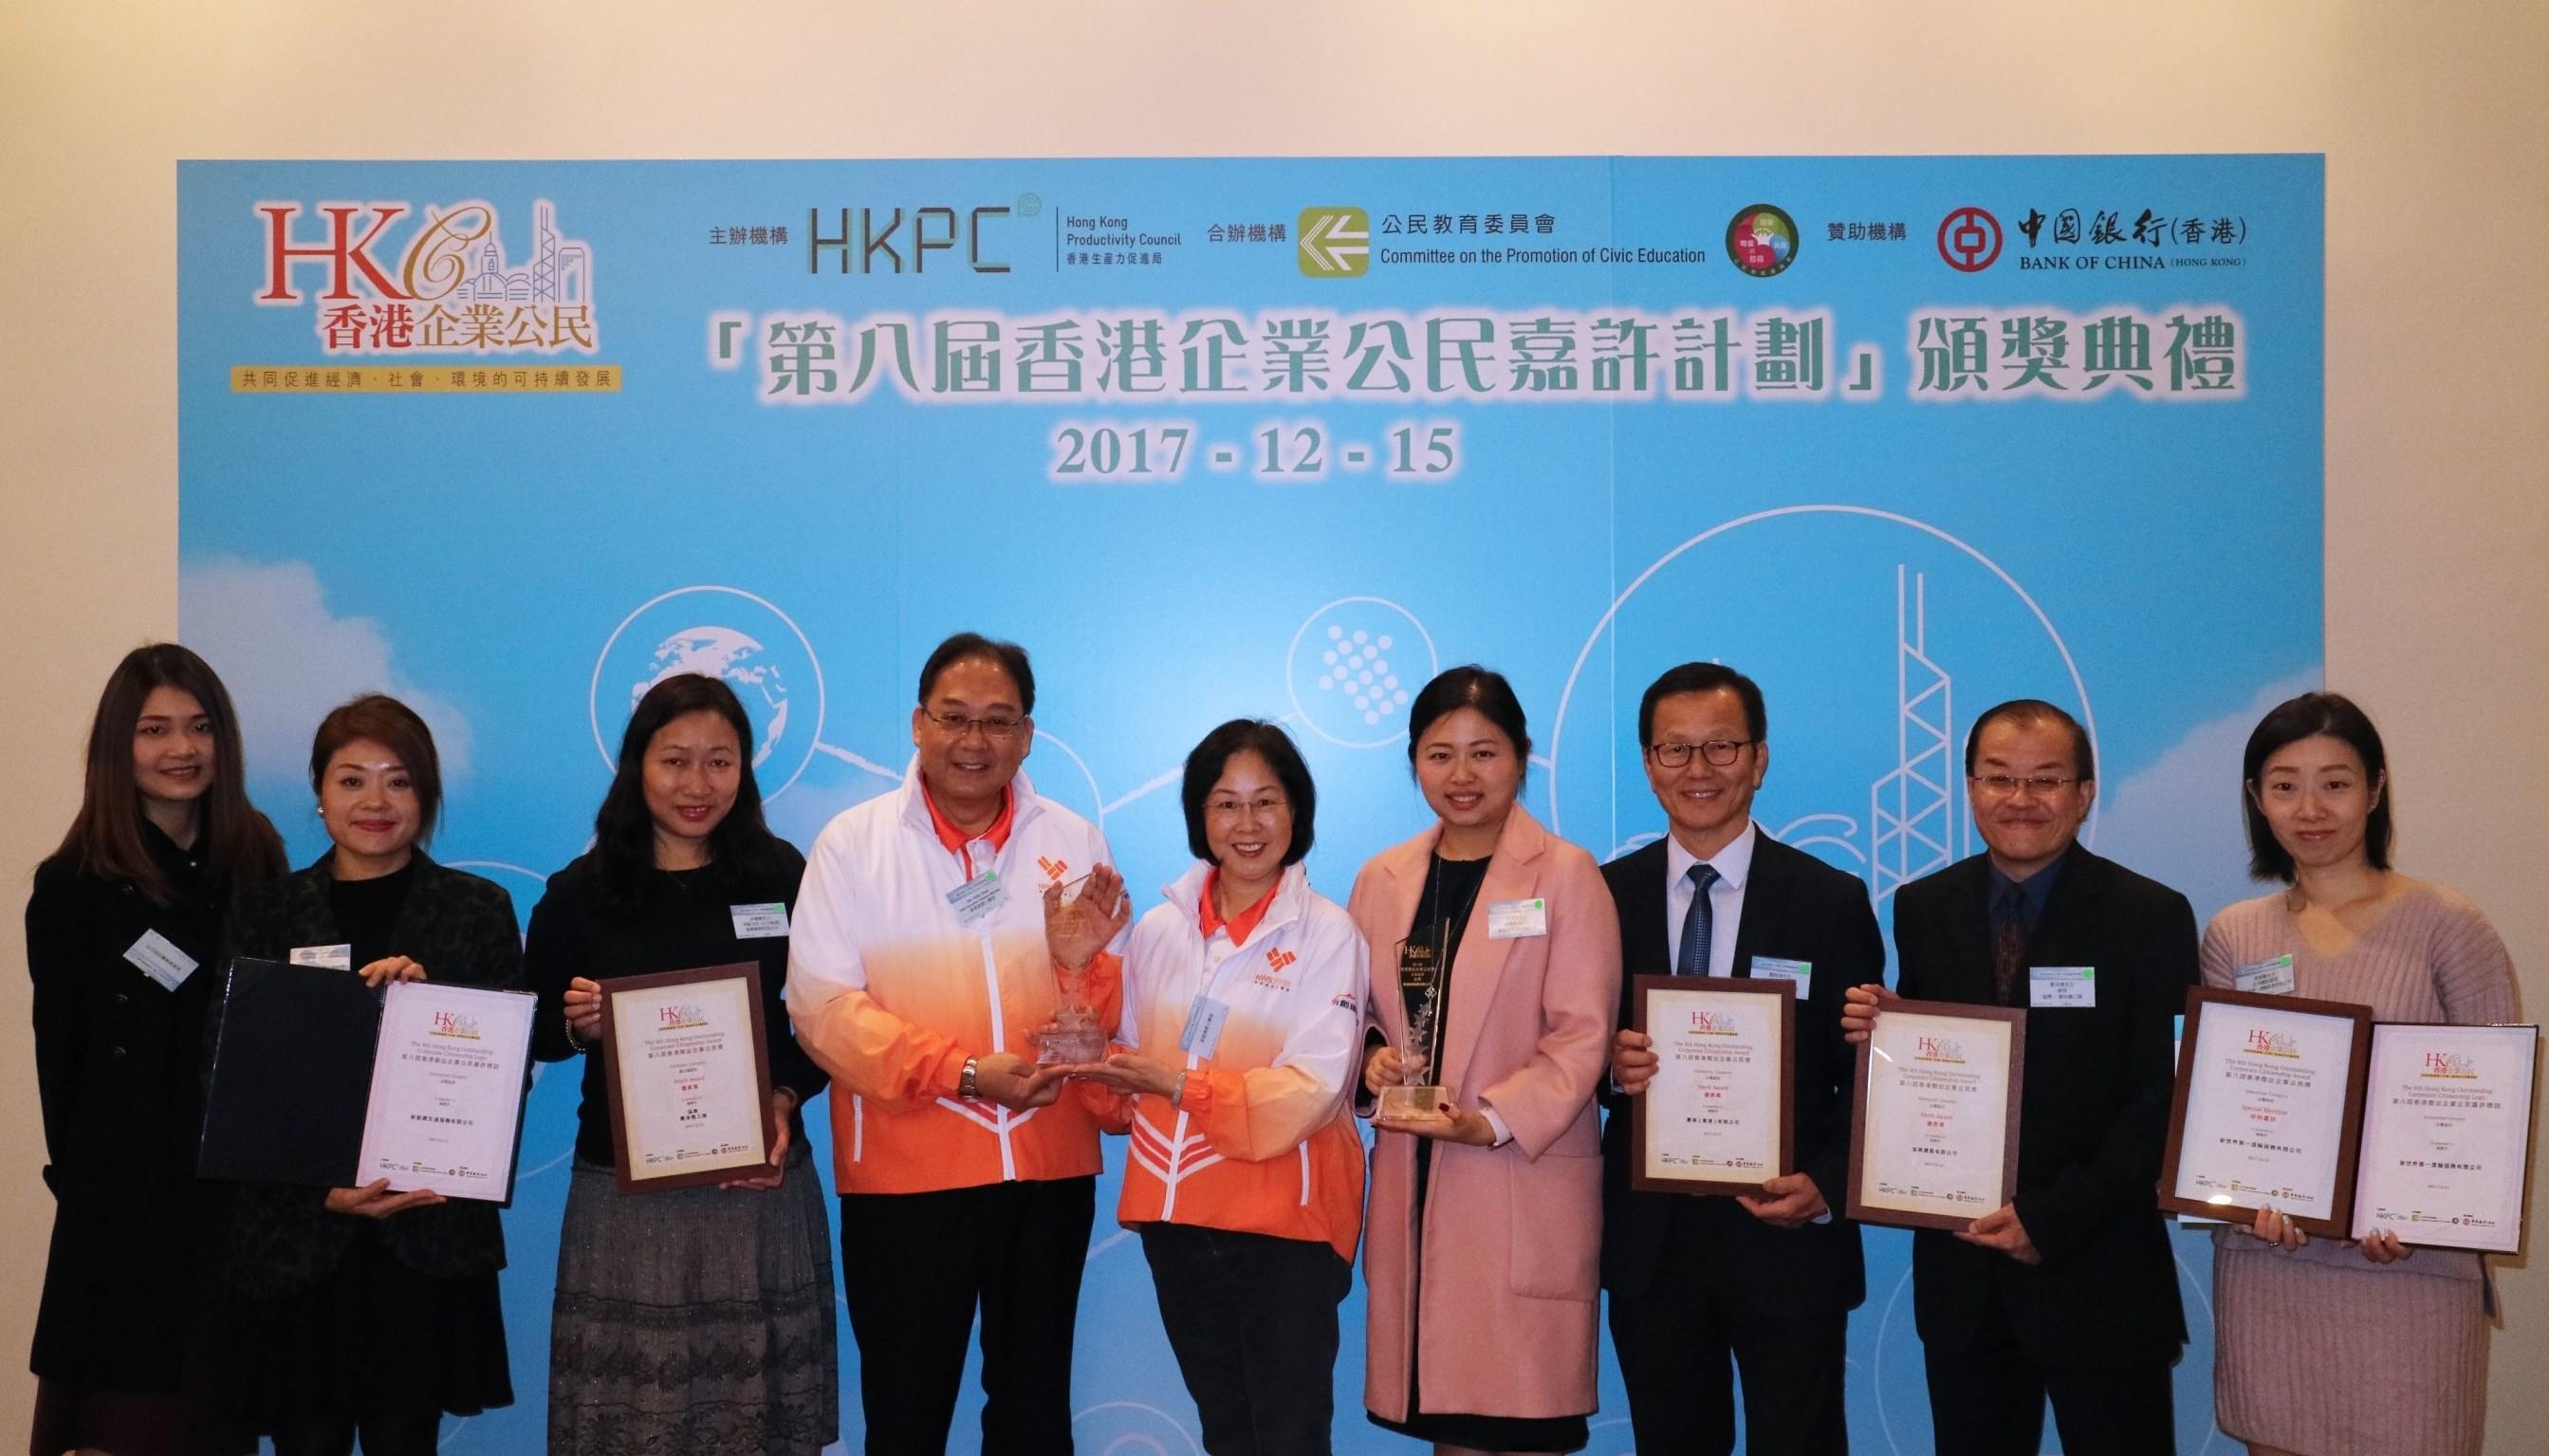 Press Release Photo-NWS Holdings takes double gold at Hong Kong Outstanding Corporate Citizenship Award